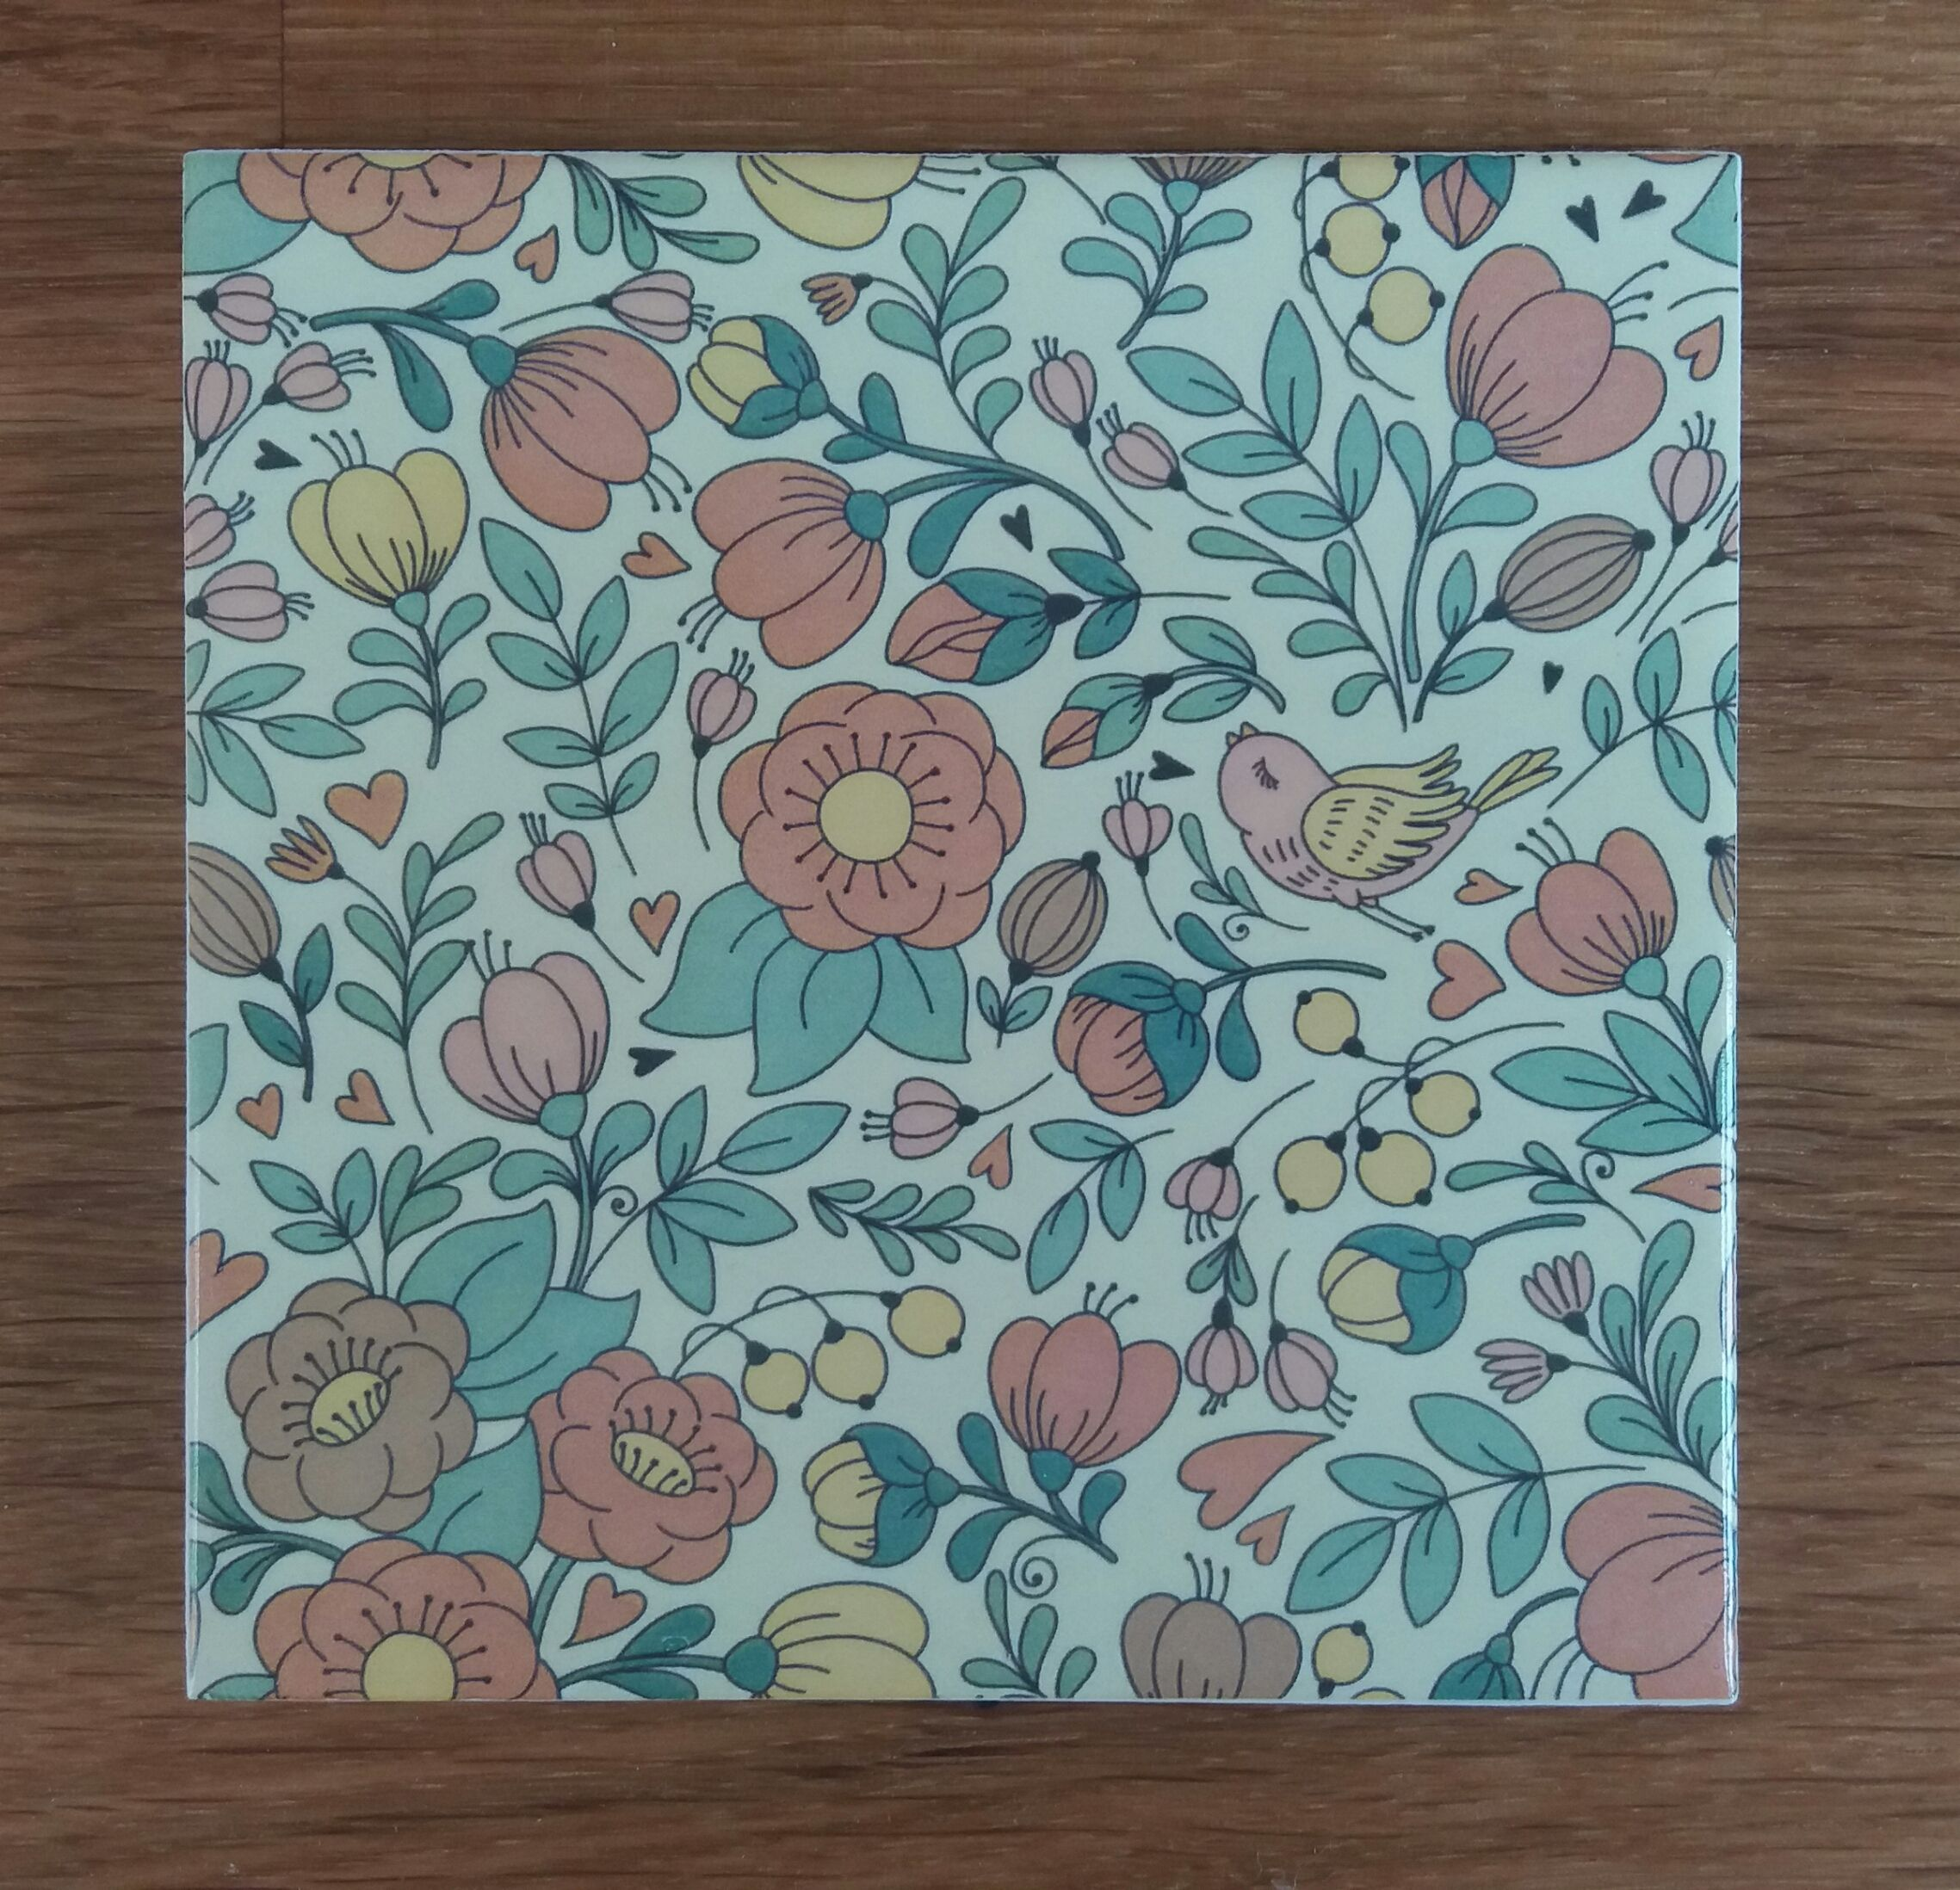 Mid century retro style patterned ceramic wall tile by floral mid century retro style patterned ceramic wall tile by floral tiles use several to create dailygadgetfo Image collections